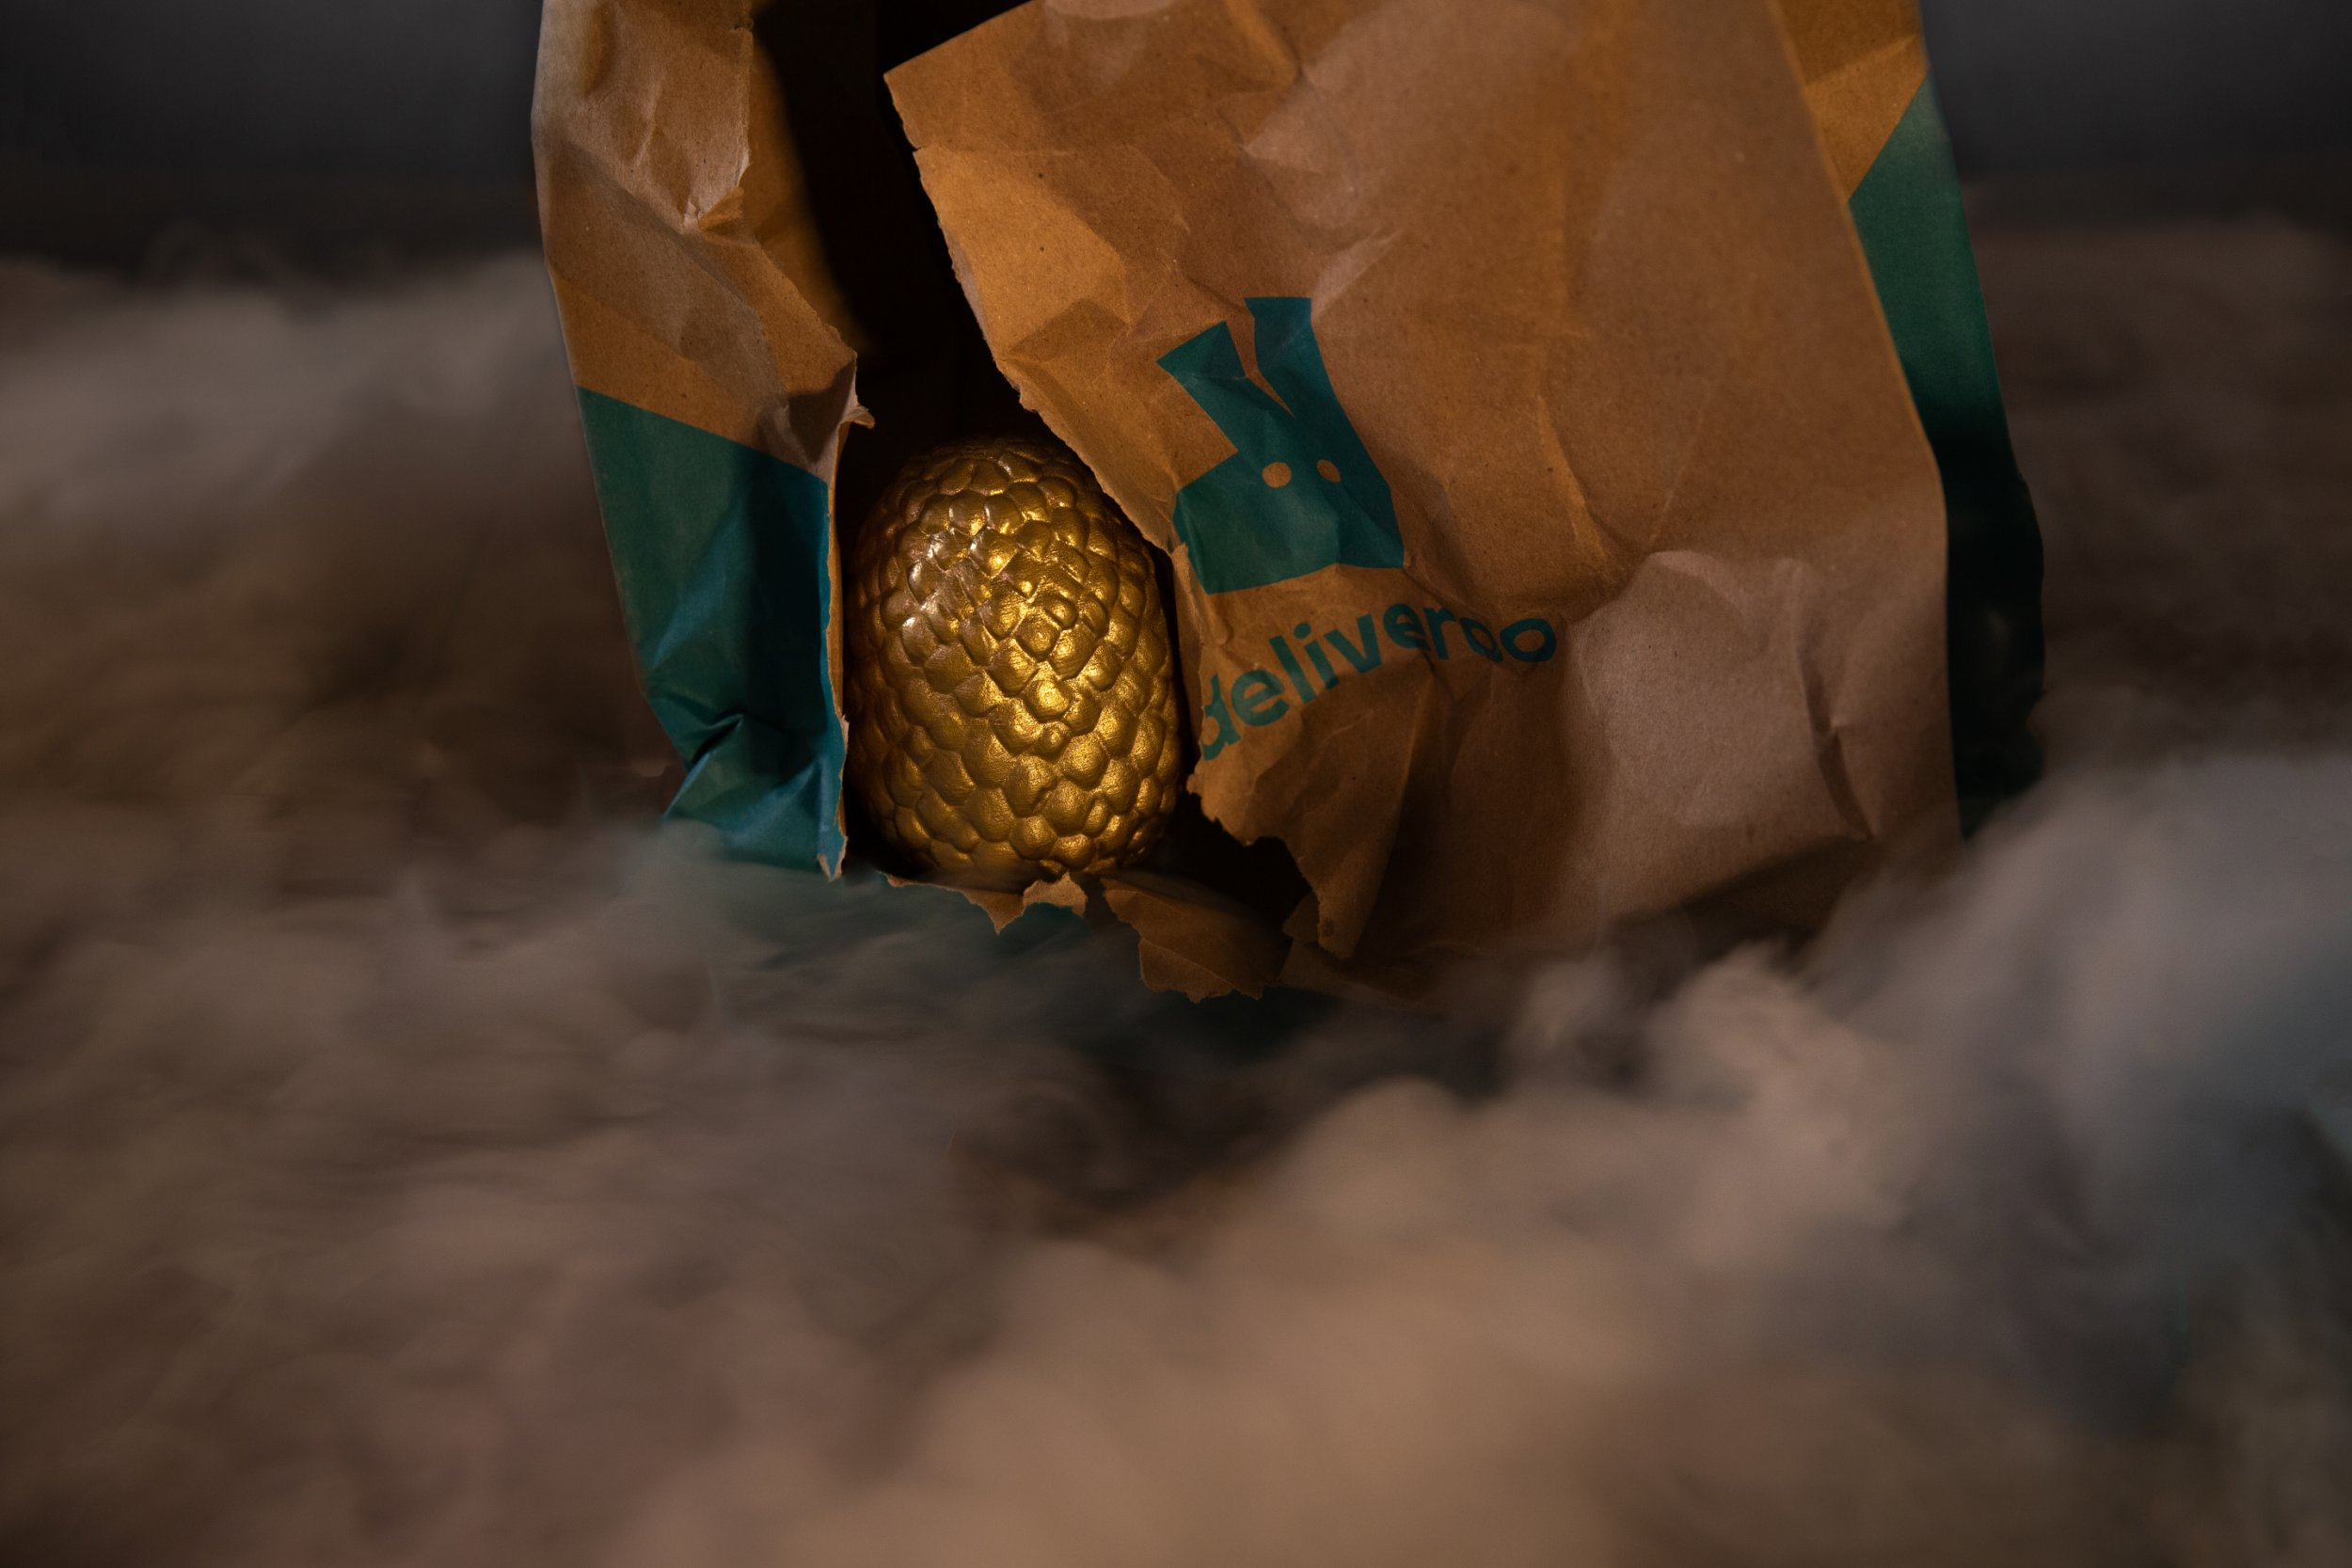 Find a Deliveroo golden egg in your meal and win £5,000 in credit